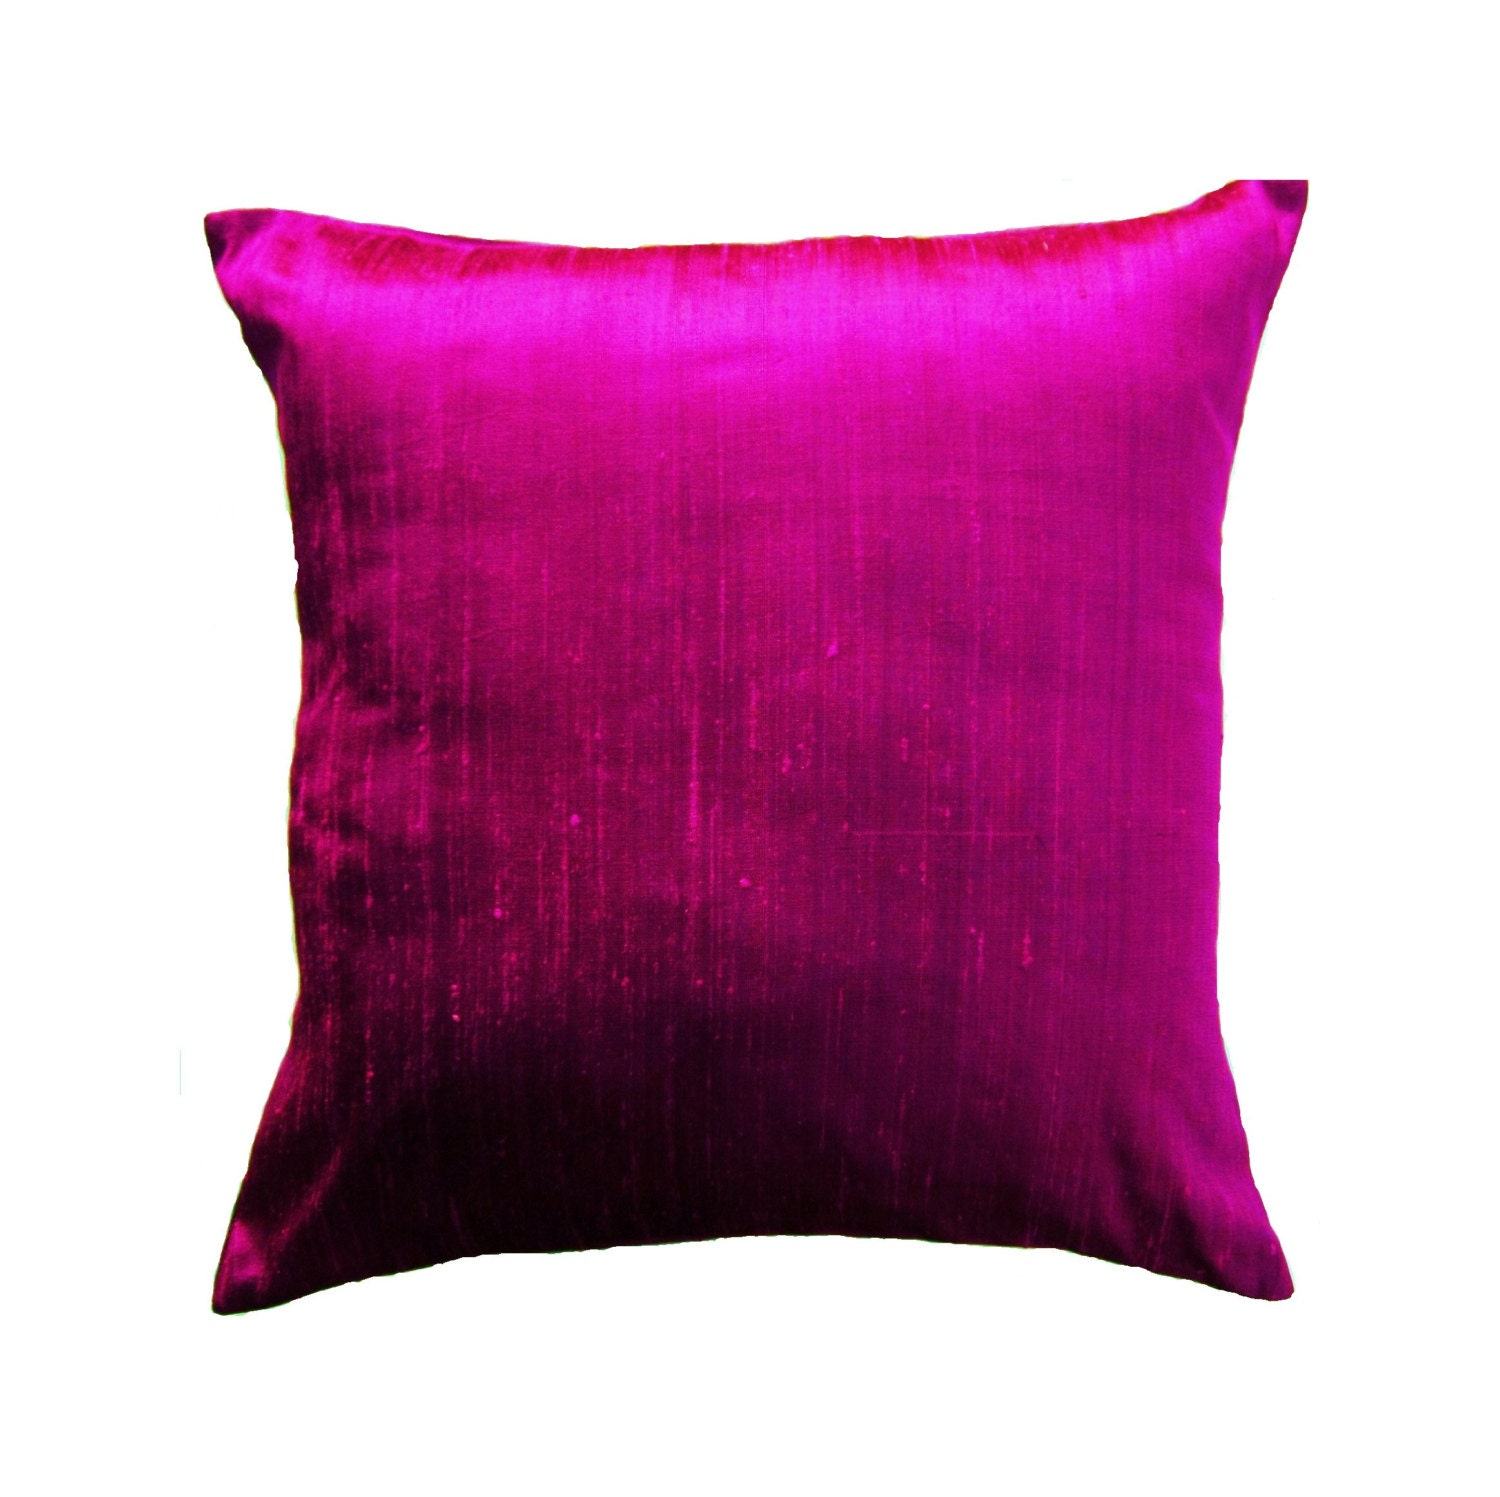 Pixies pillows galary naked videos